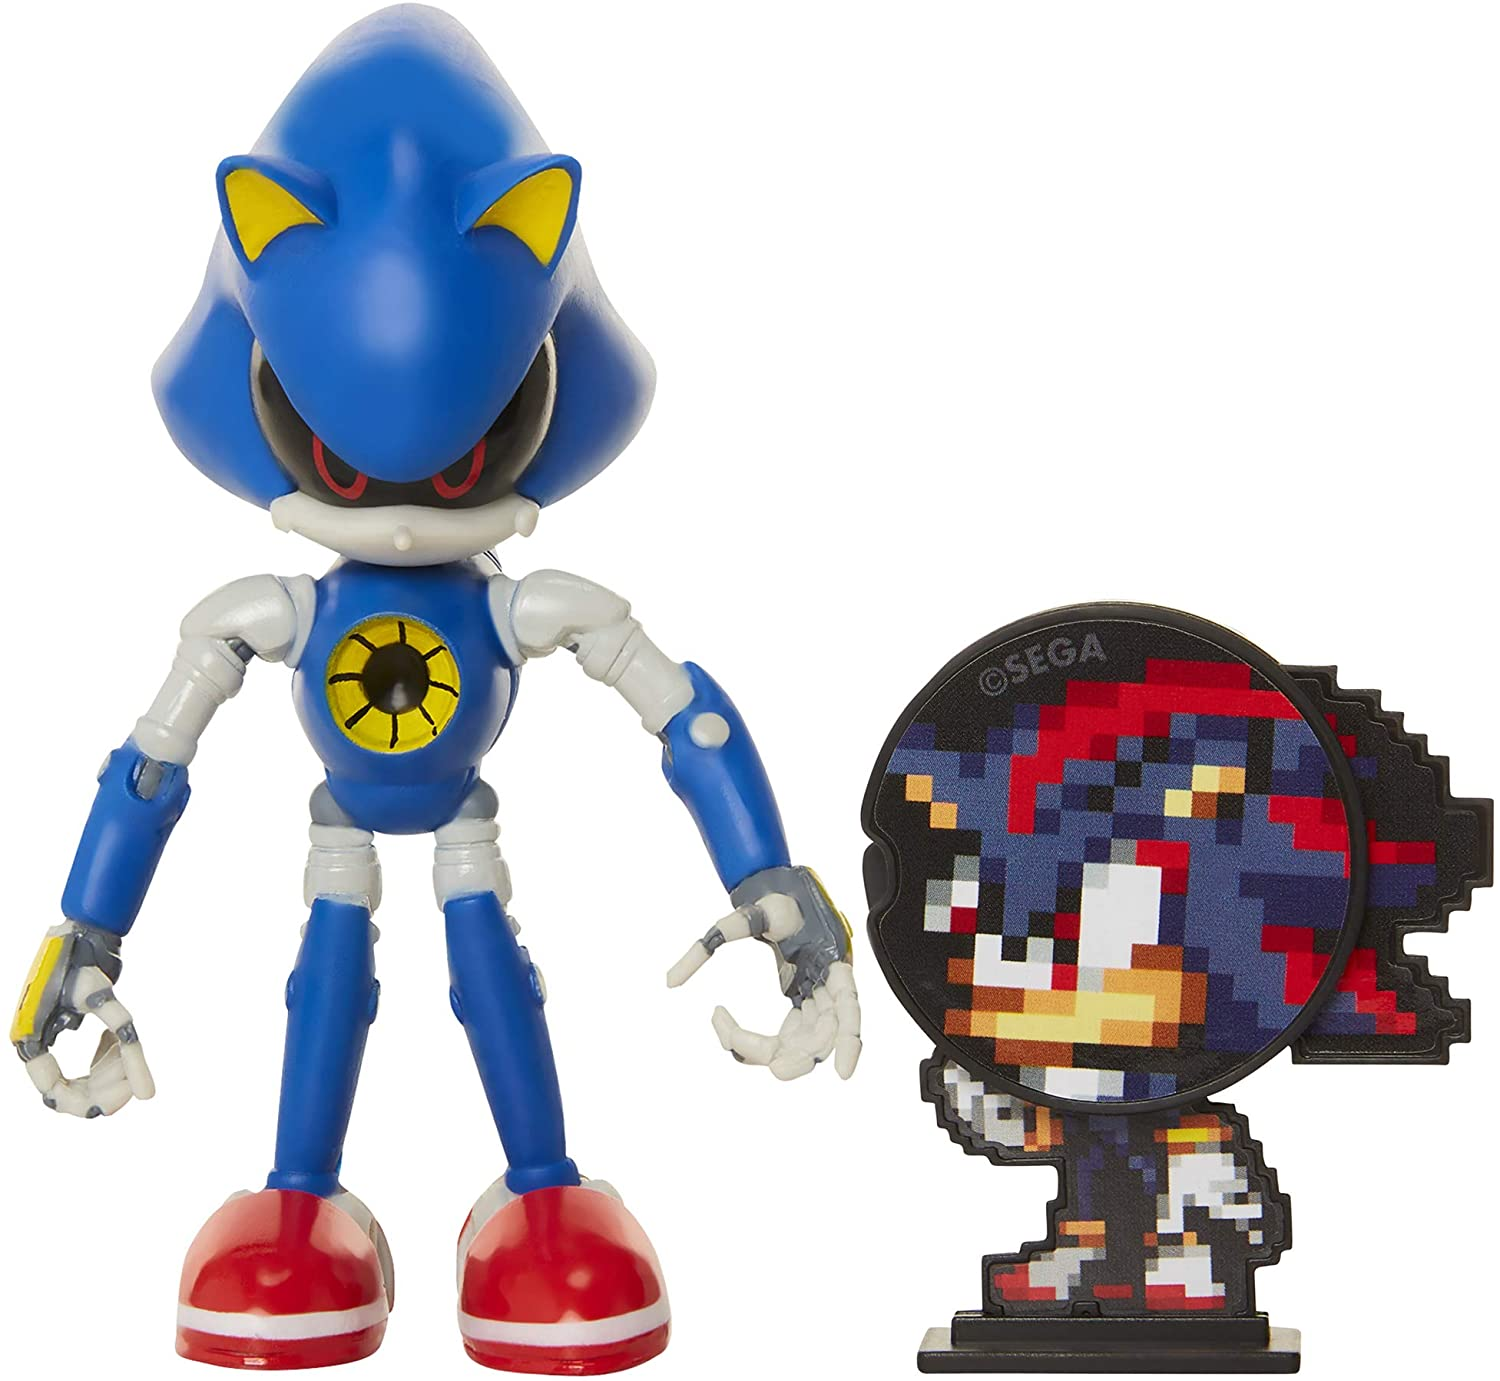 Amazon Com Sonic The Hedgehog Collectible Metal Sonic 4 Bendable Flexible Action Figure With Bendable Limbs Spinable Friend Disk Accessory Perfect For Kids Collectors Alike For Ages 3 Toys Games